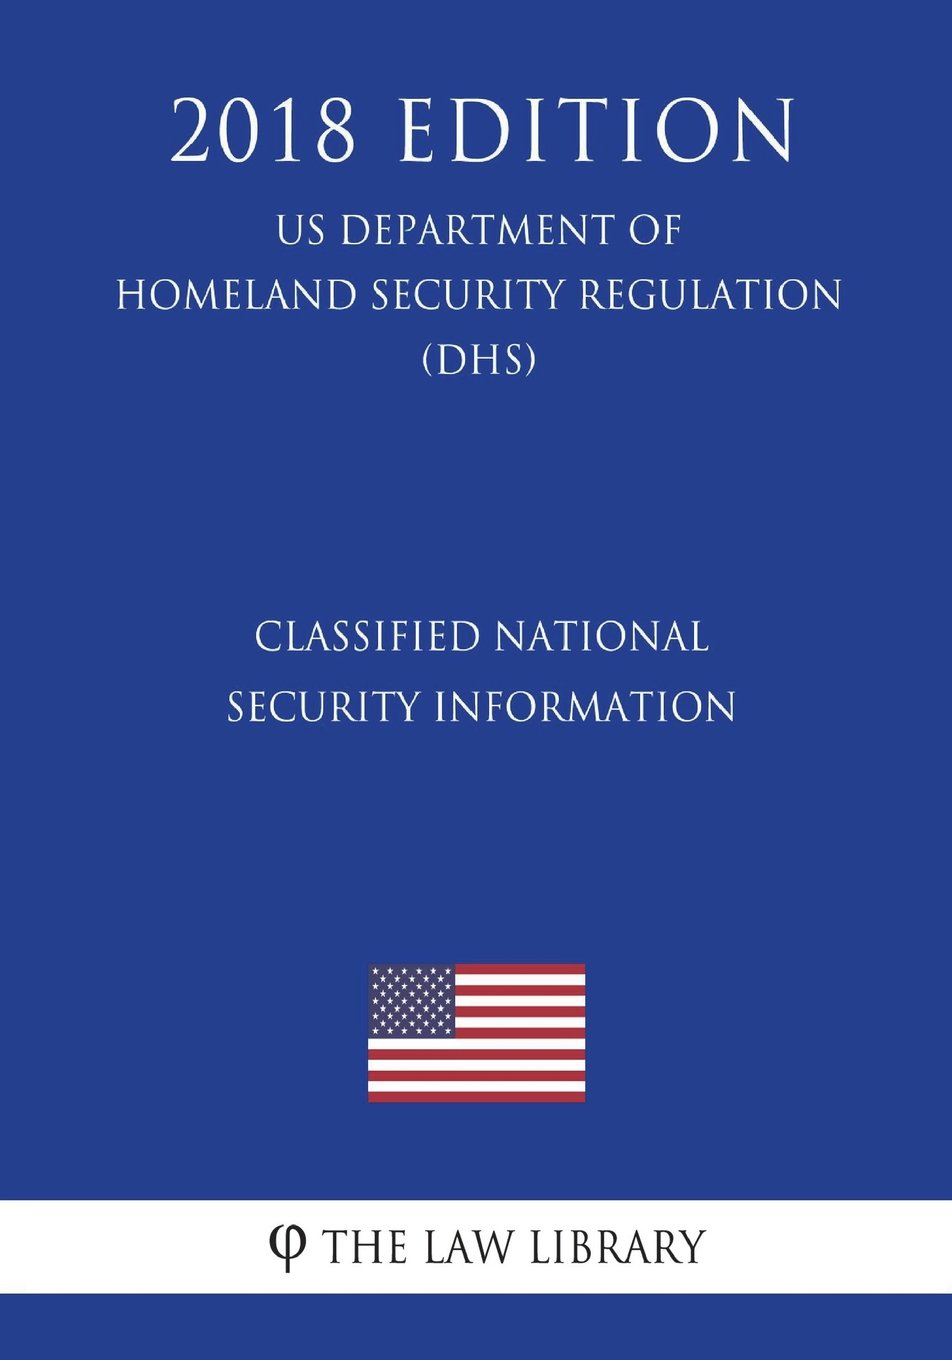 Download Classified National Security Information (US Department of Homeland Security Regulation) (DHS) (2018 Edition) ebook